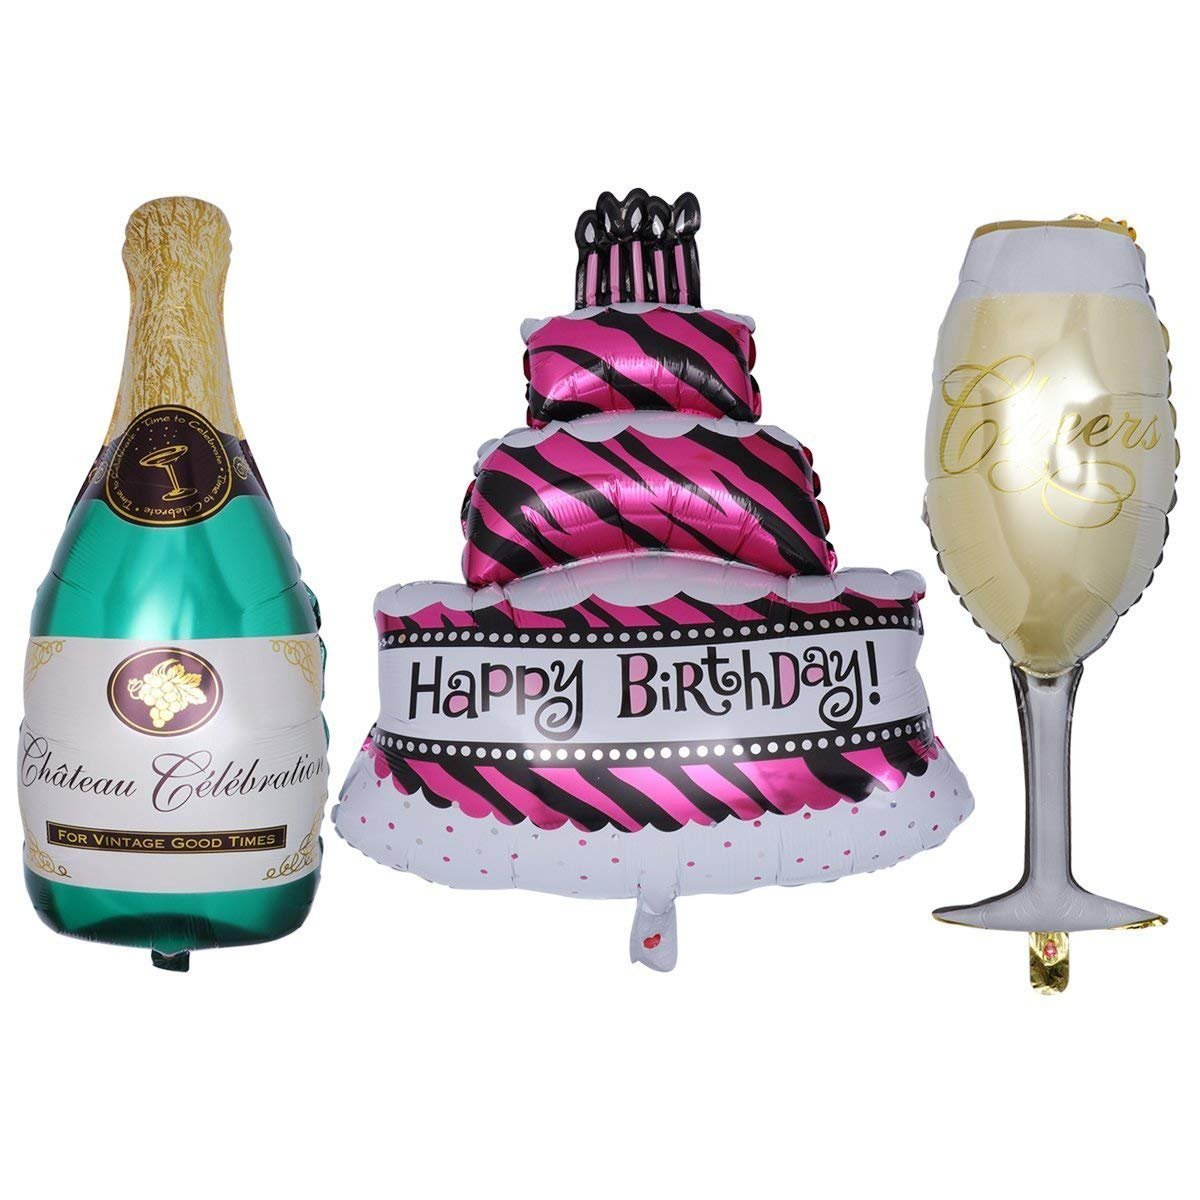 Masti Zone Happy Birthday Cake Shape Foil Balloon With Champagne Bottle And Wine Glass 16 Inch Amazon In Toys Games